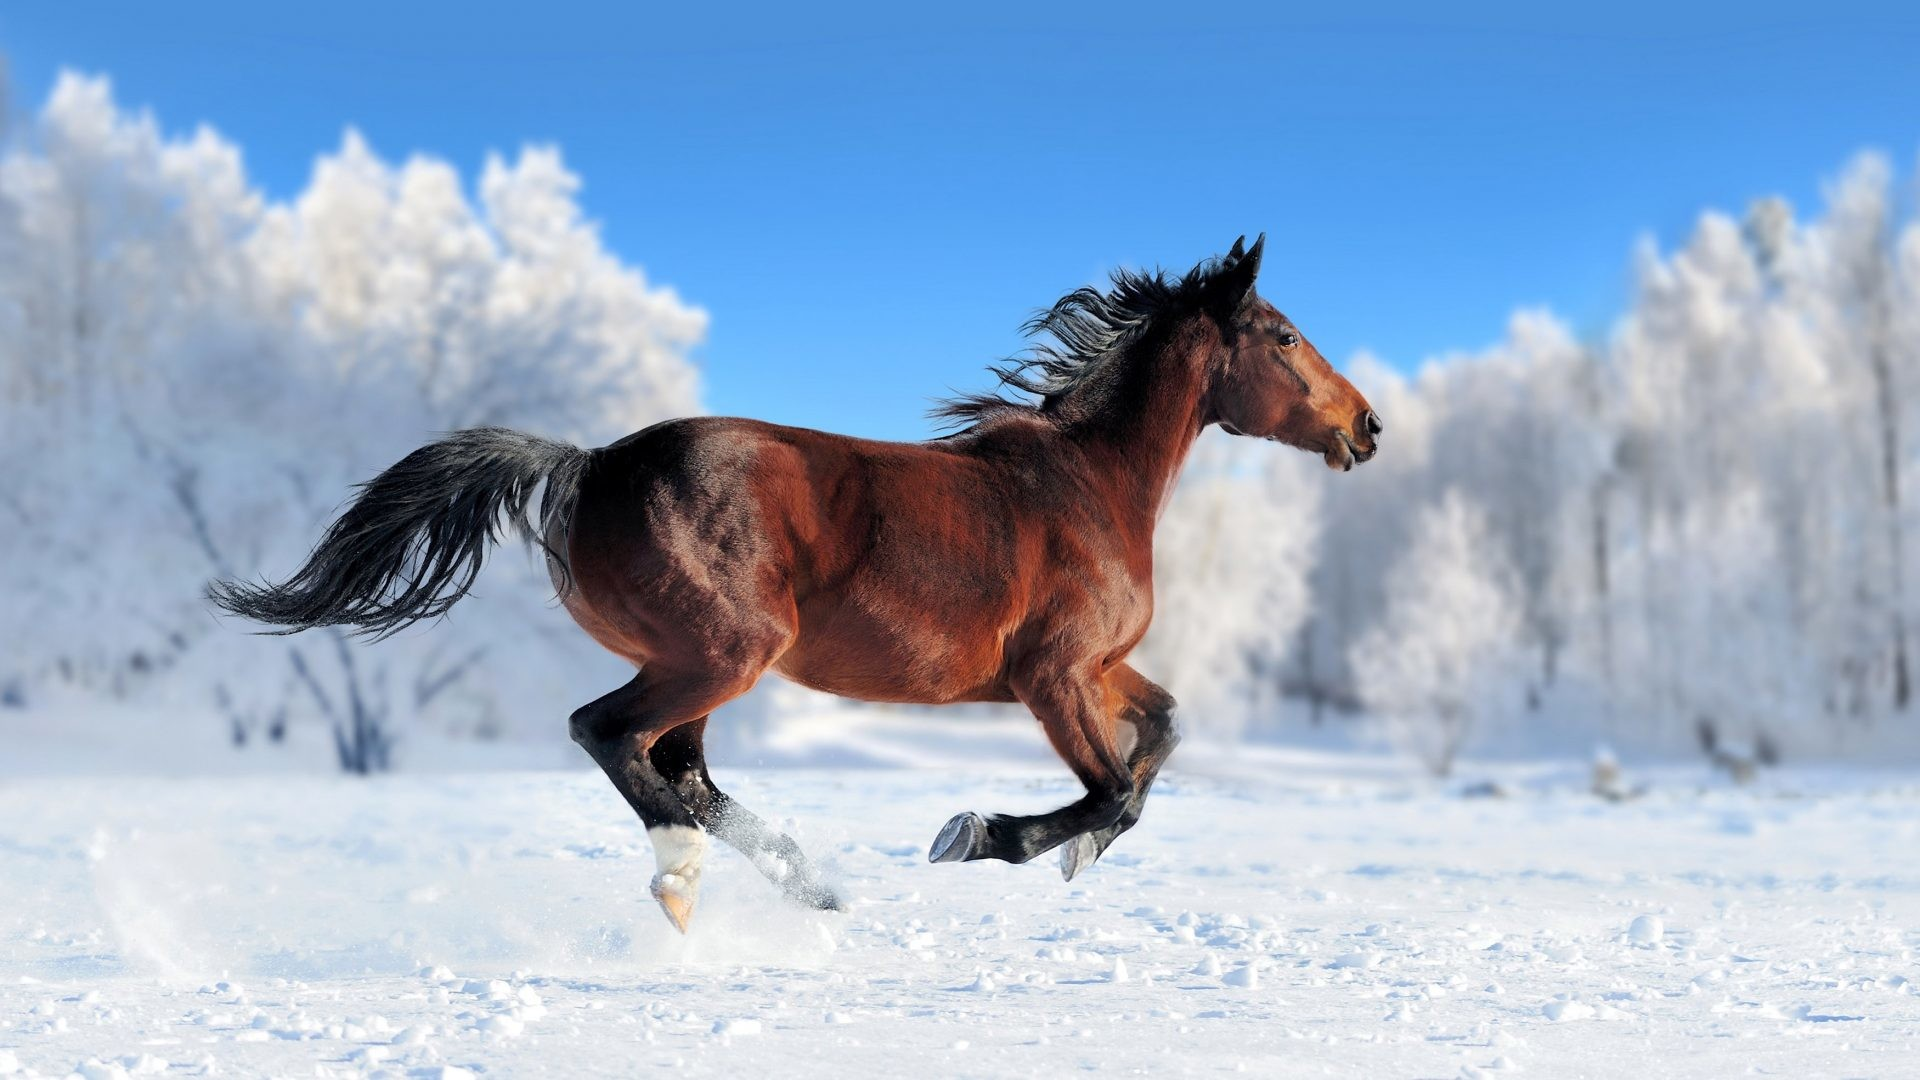 1920x1080 Run Tag - Animals Run Snow Horses Cool Animal Background Pictures for HD  16:9